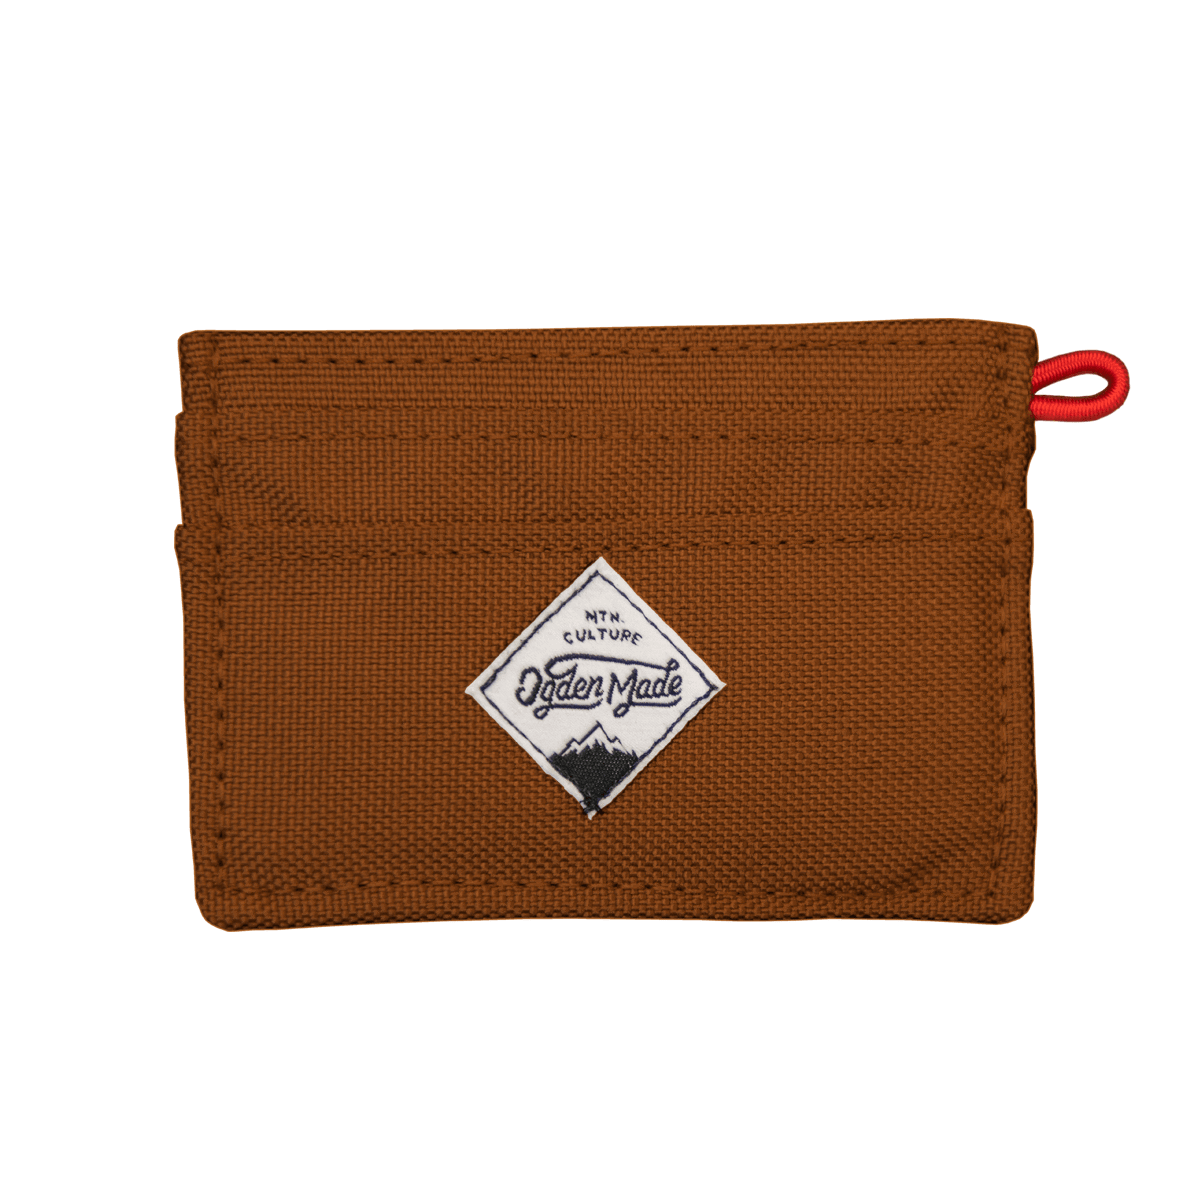 Accessory Pouch Rust Orange Z Causey Wallet